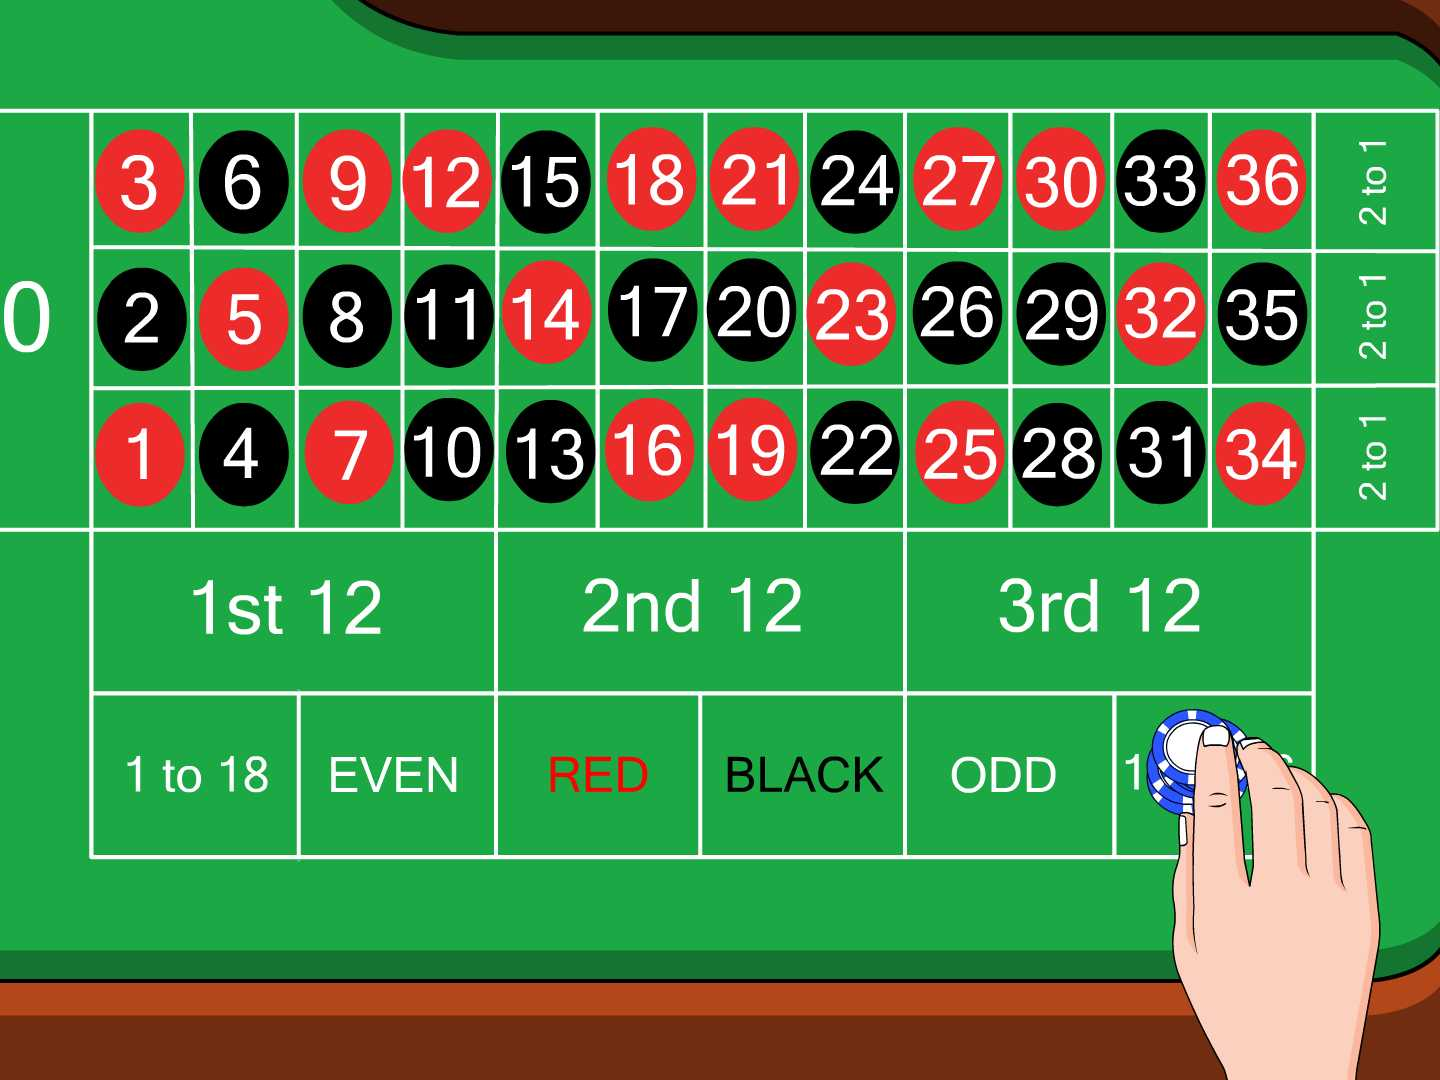 Good luck and have fun playing at these 100% most reputable online casinos